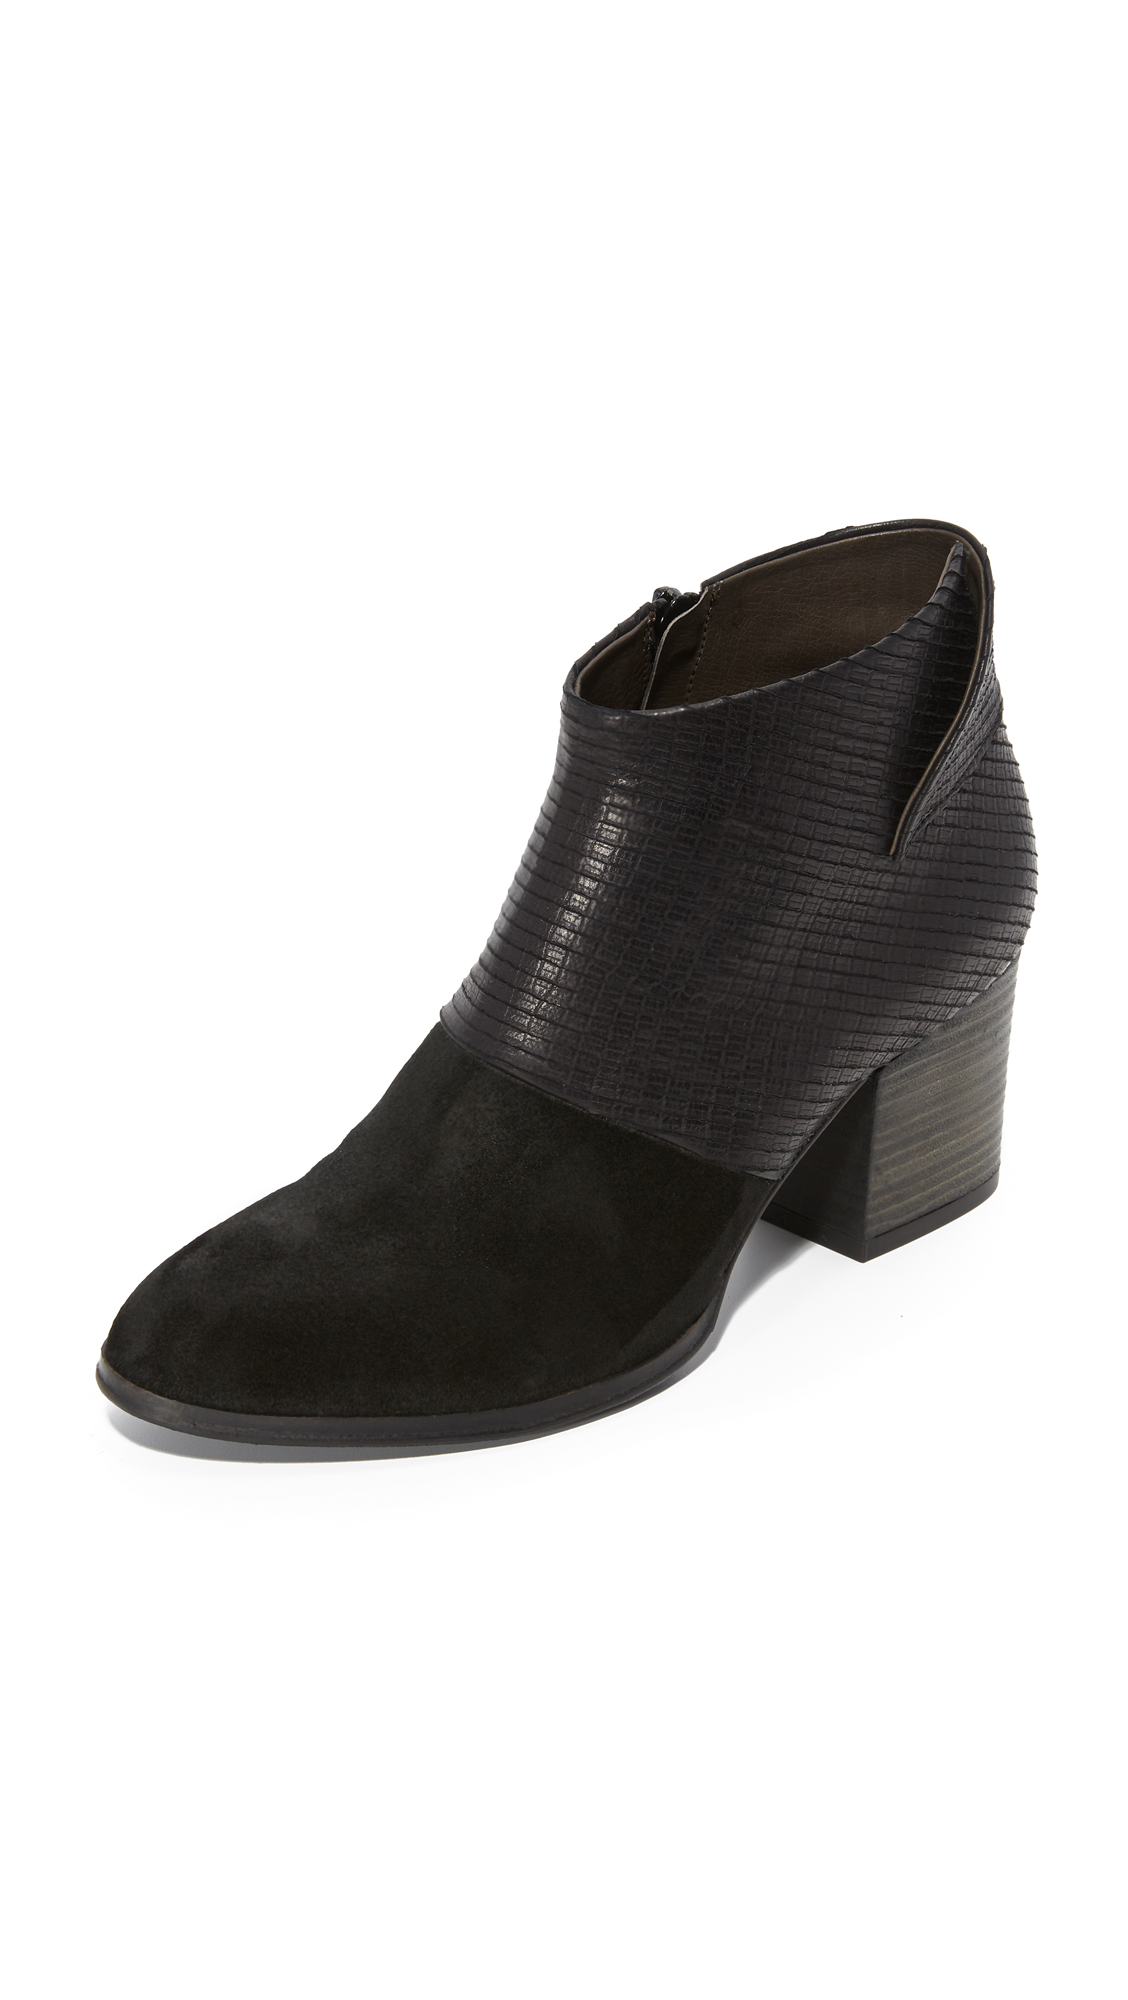 Coclico Shoes Oki Booties - Black